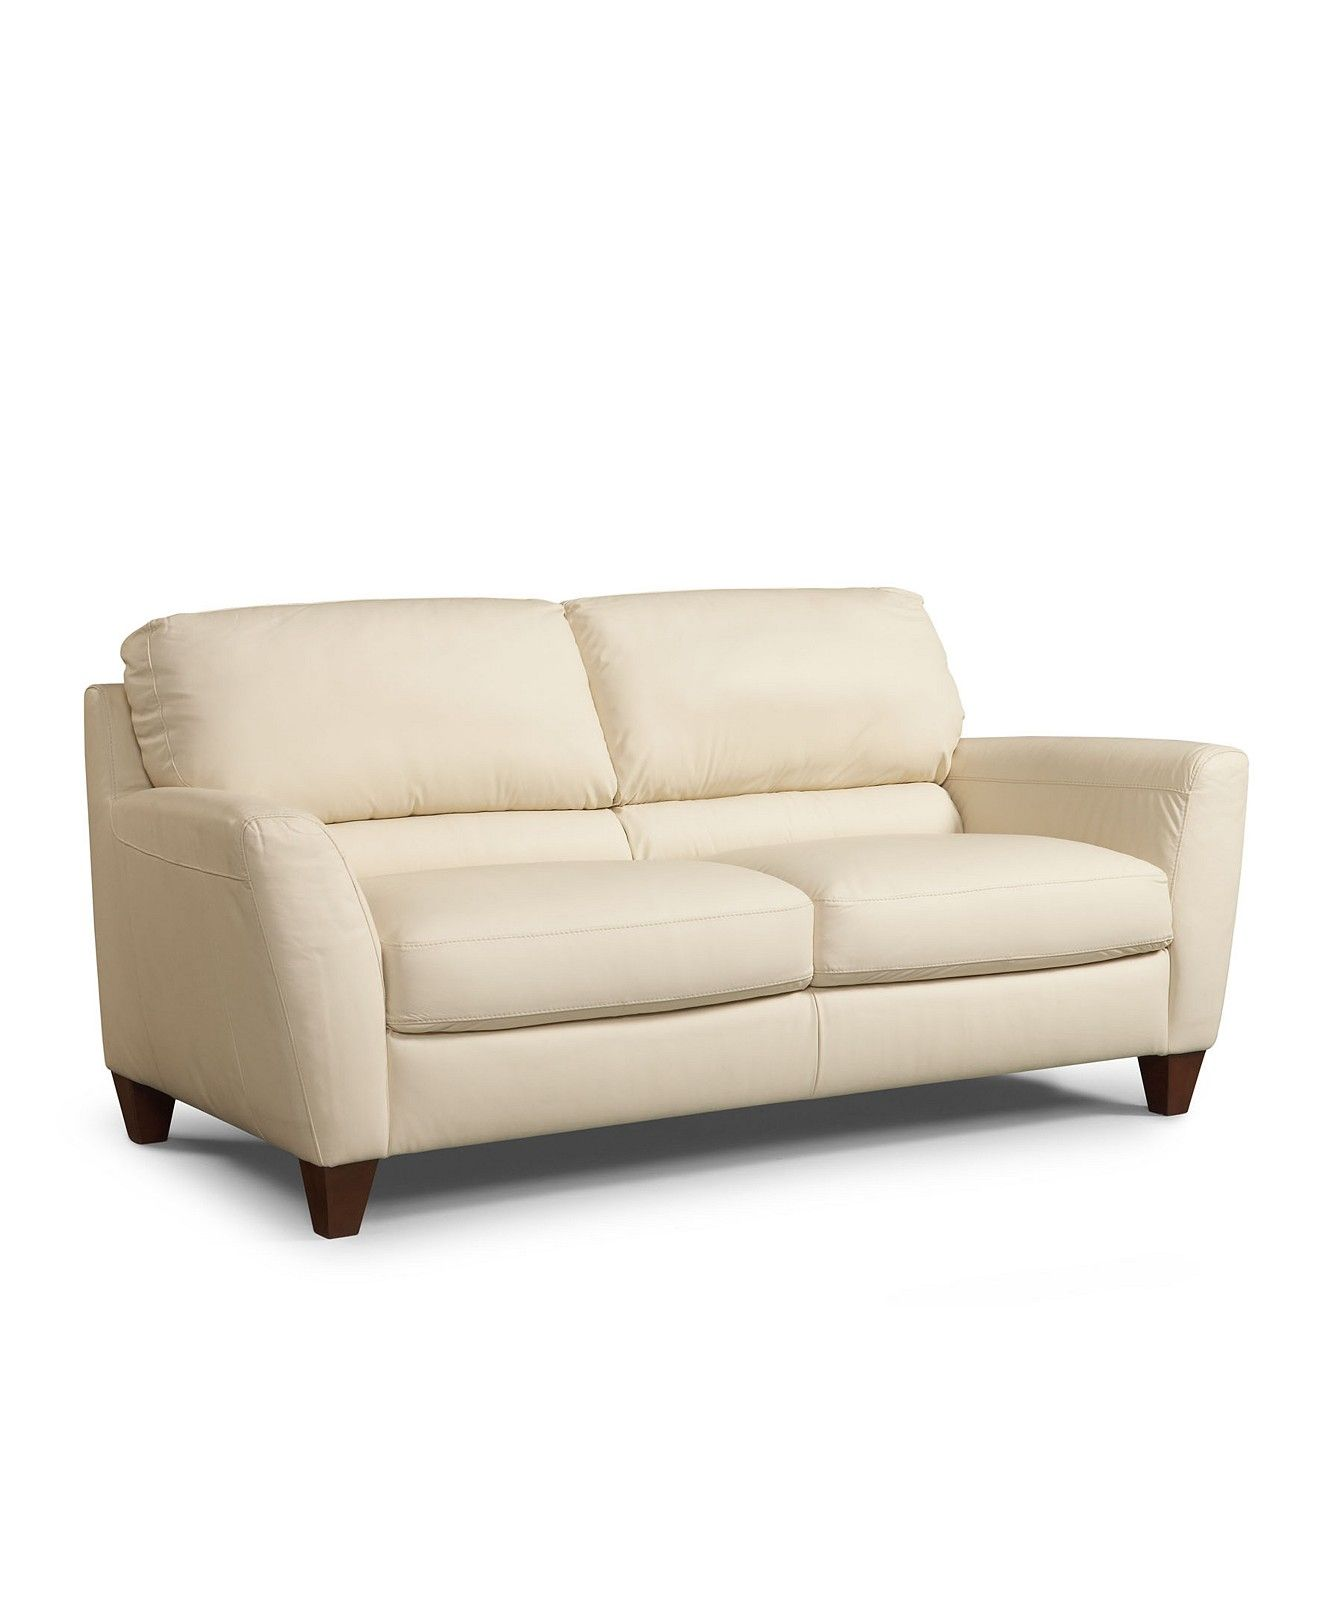 almafi 2 piece leather sofa set and love seat low seating online couches new york couch doctor disembly reembly